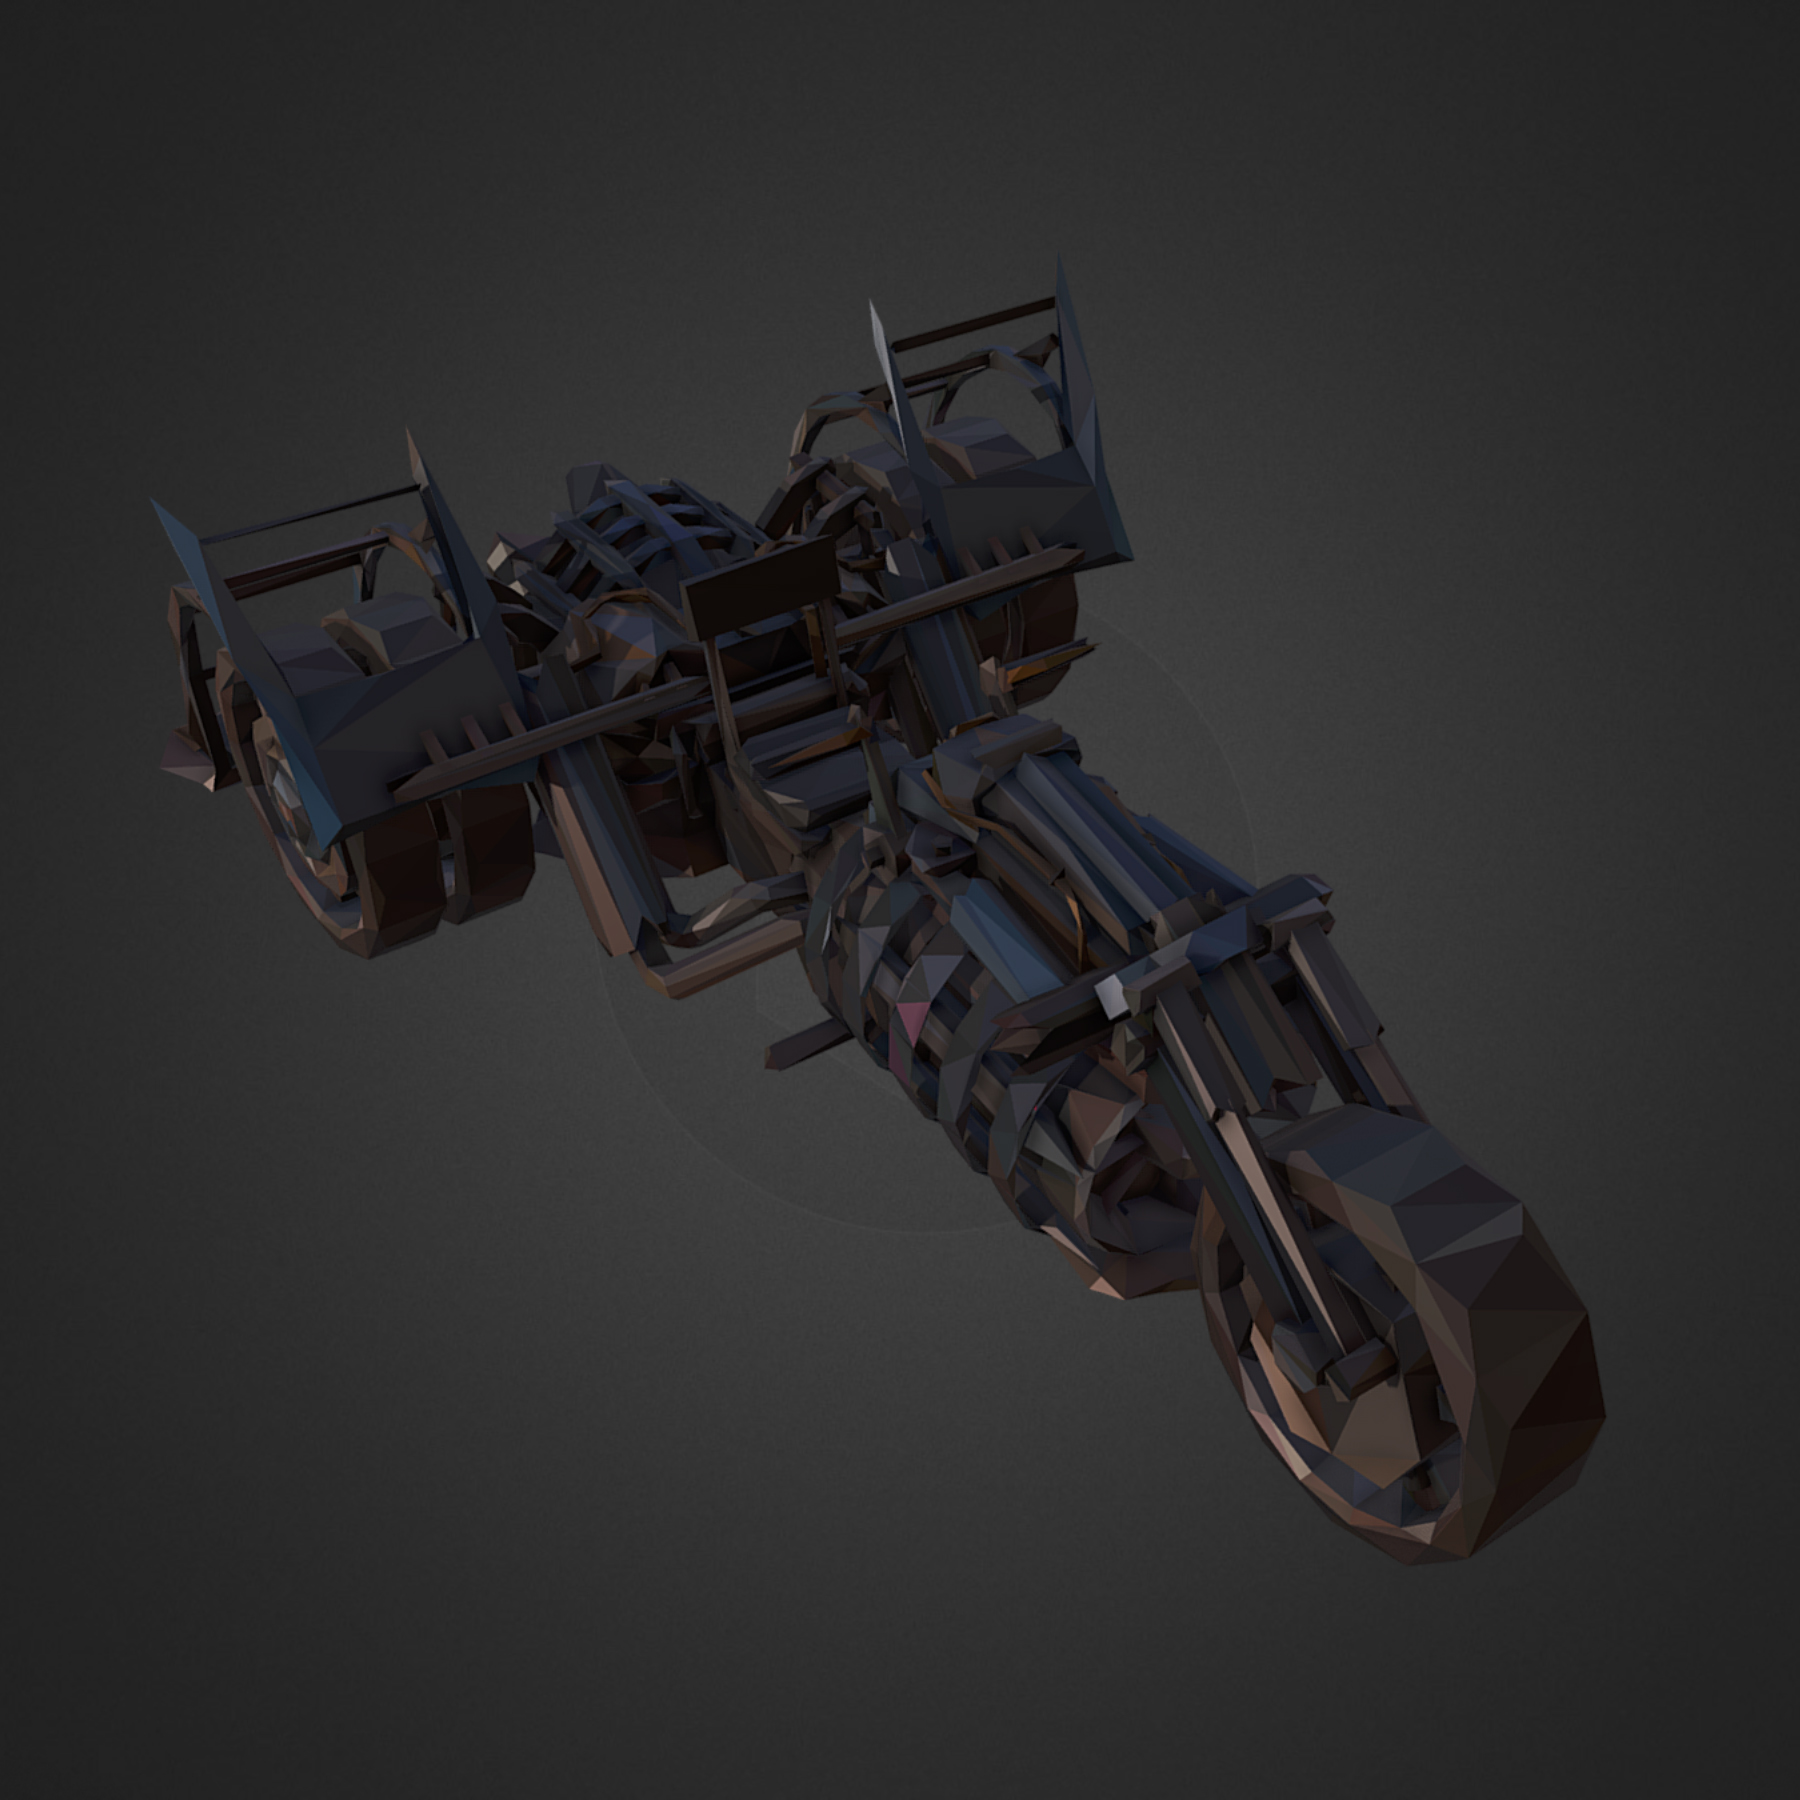 rendah poligon seni steampunk treble bike 3d model 3ds max fbx ma mb tga targa icb vda vst pix obj 270983